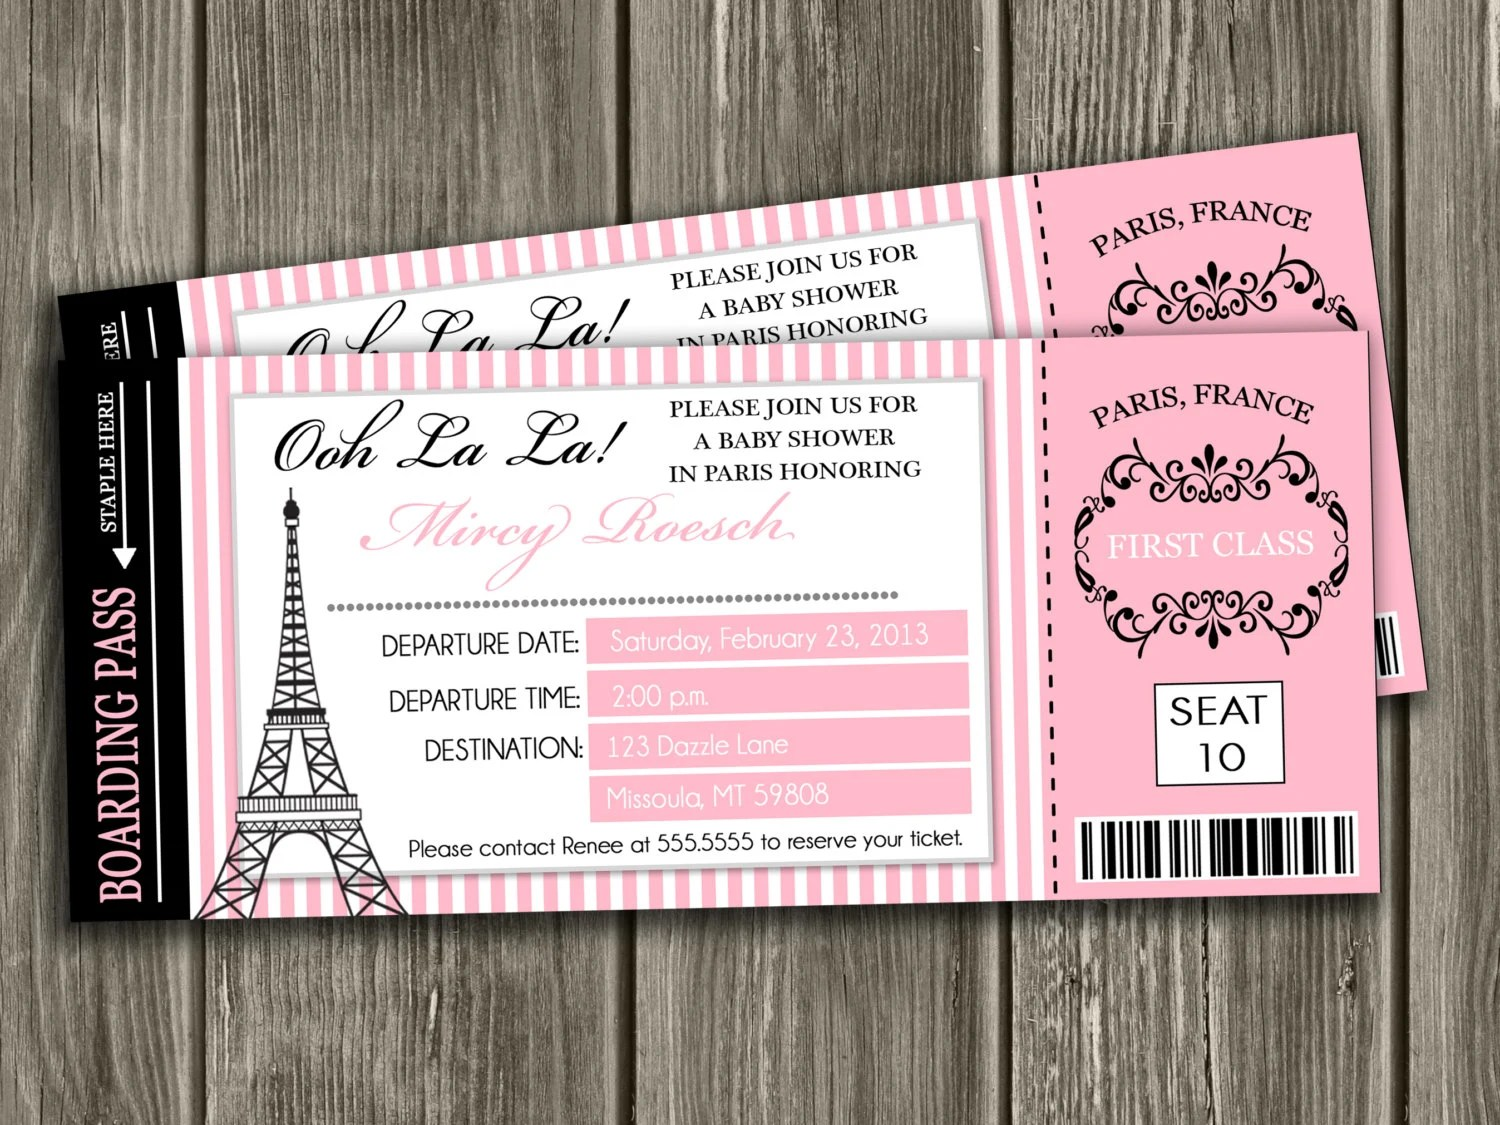 Paris Boarding Pass Baby Shower Invitation - FREE thank you card included